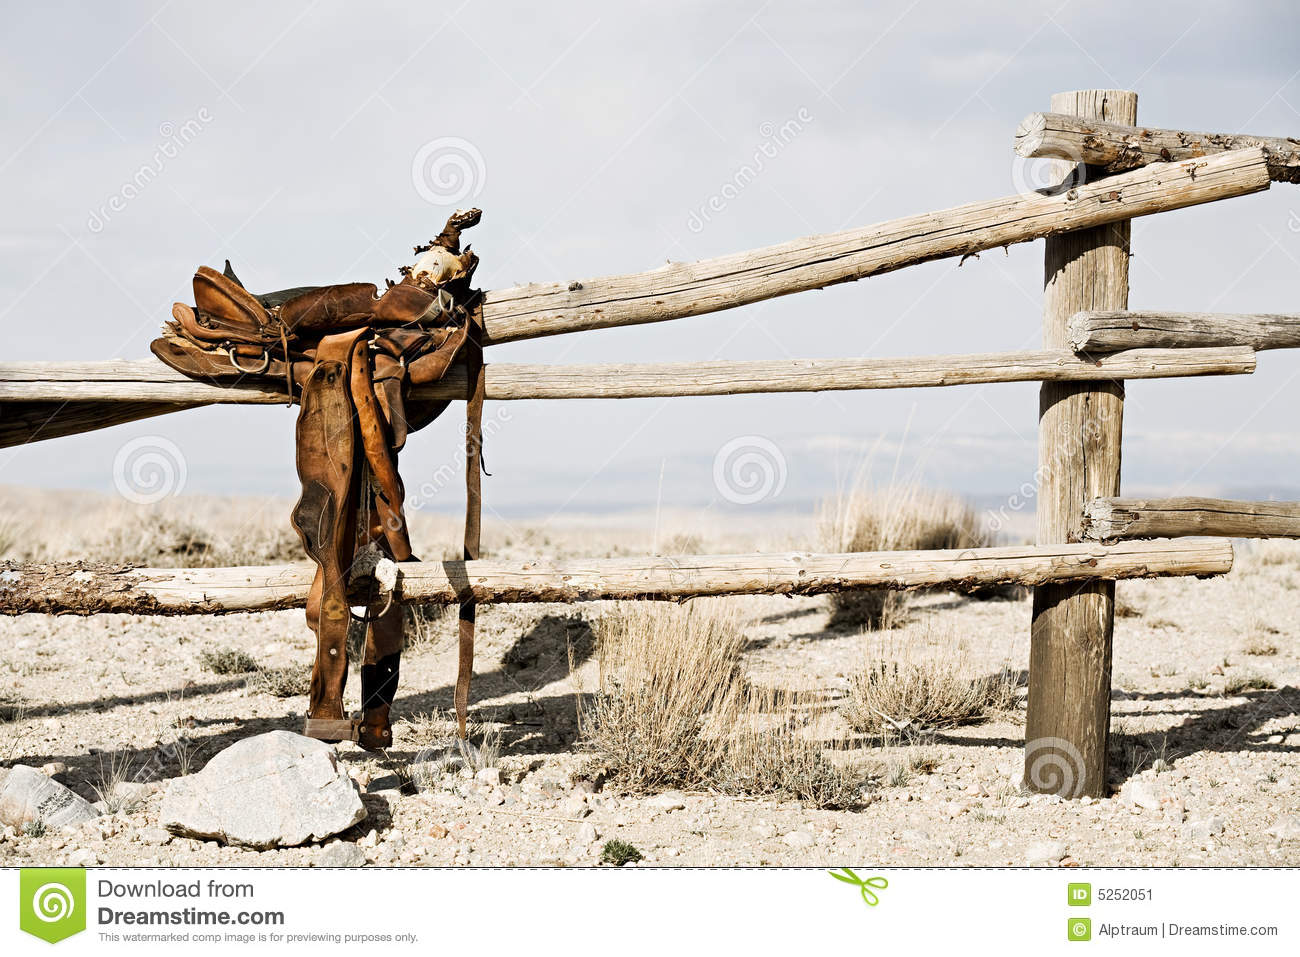 Ranch scene - saddle on rural fence, vintage worn saddle in the dry ...